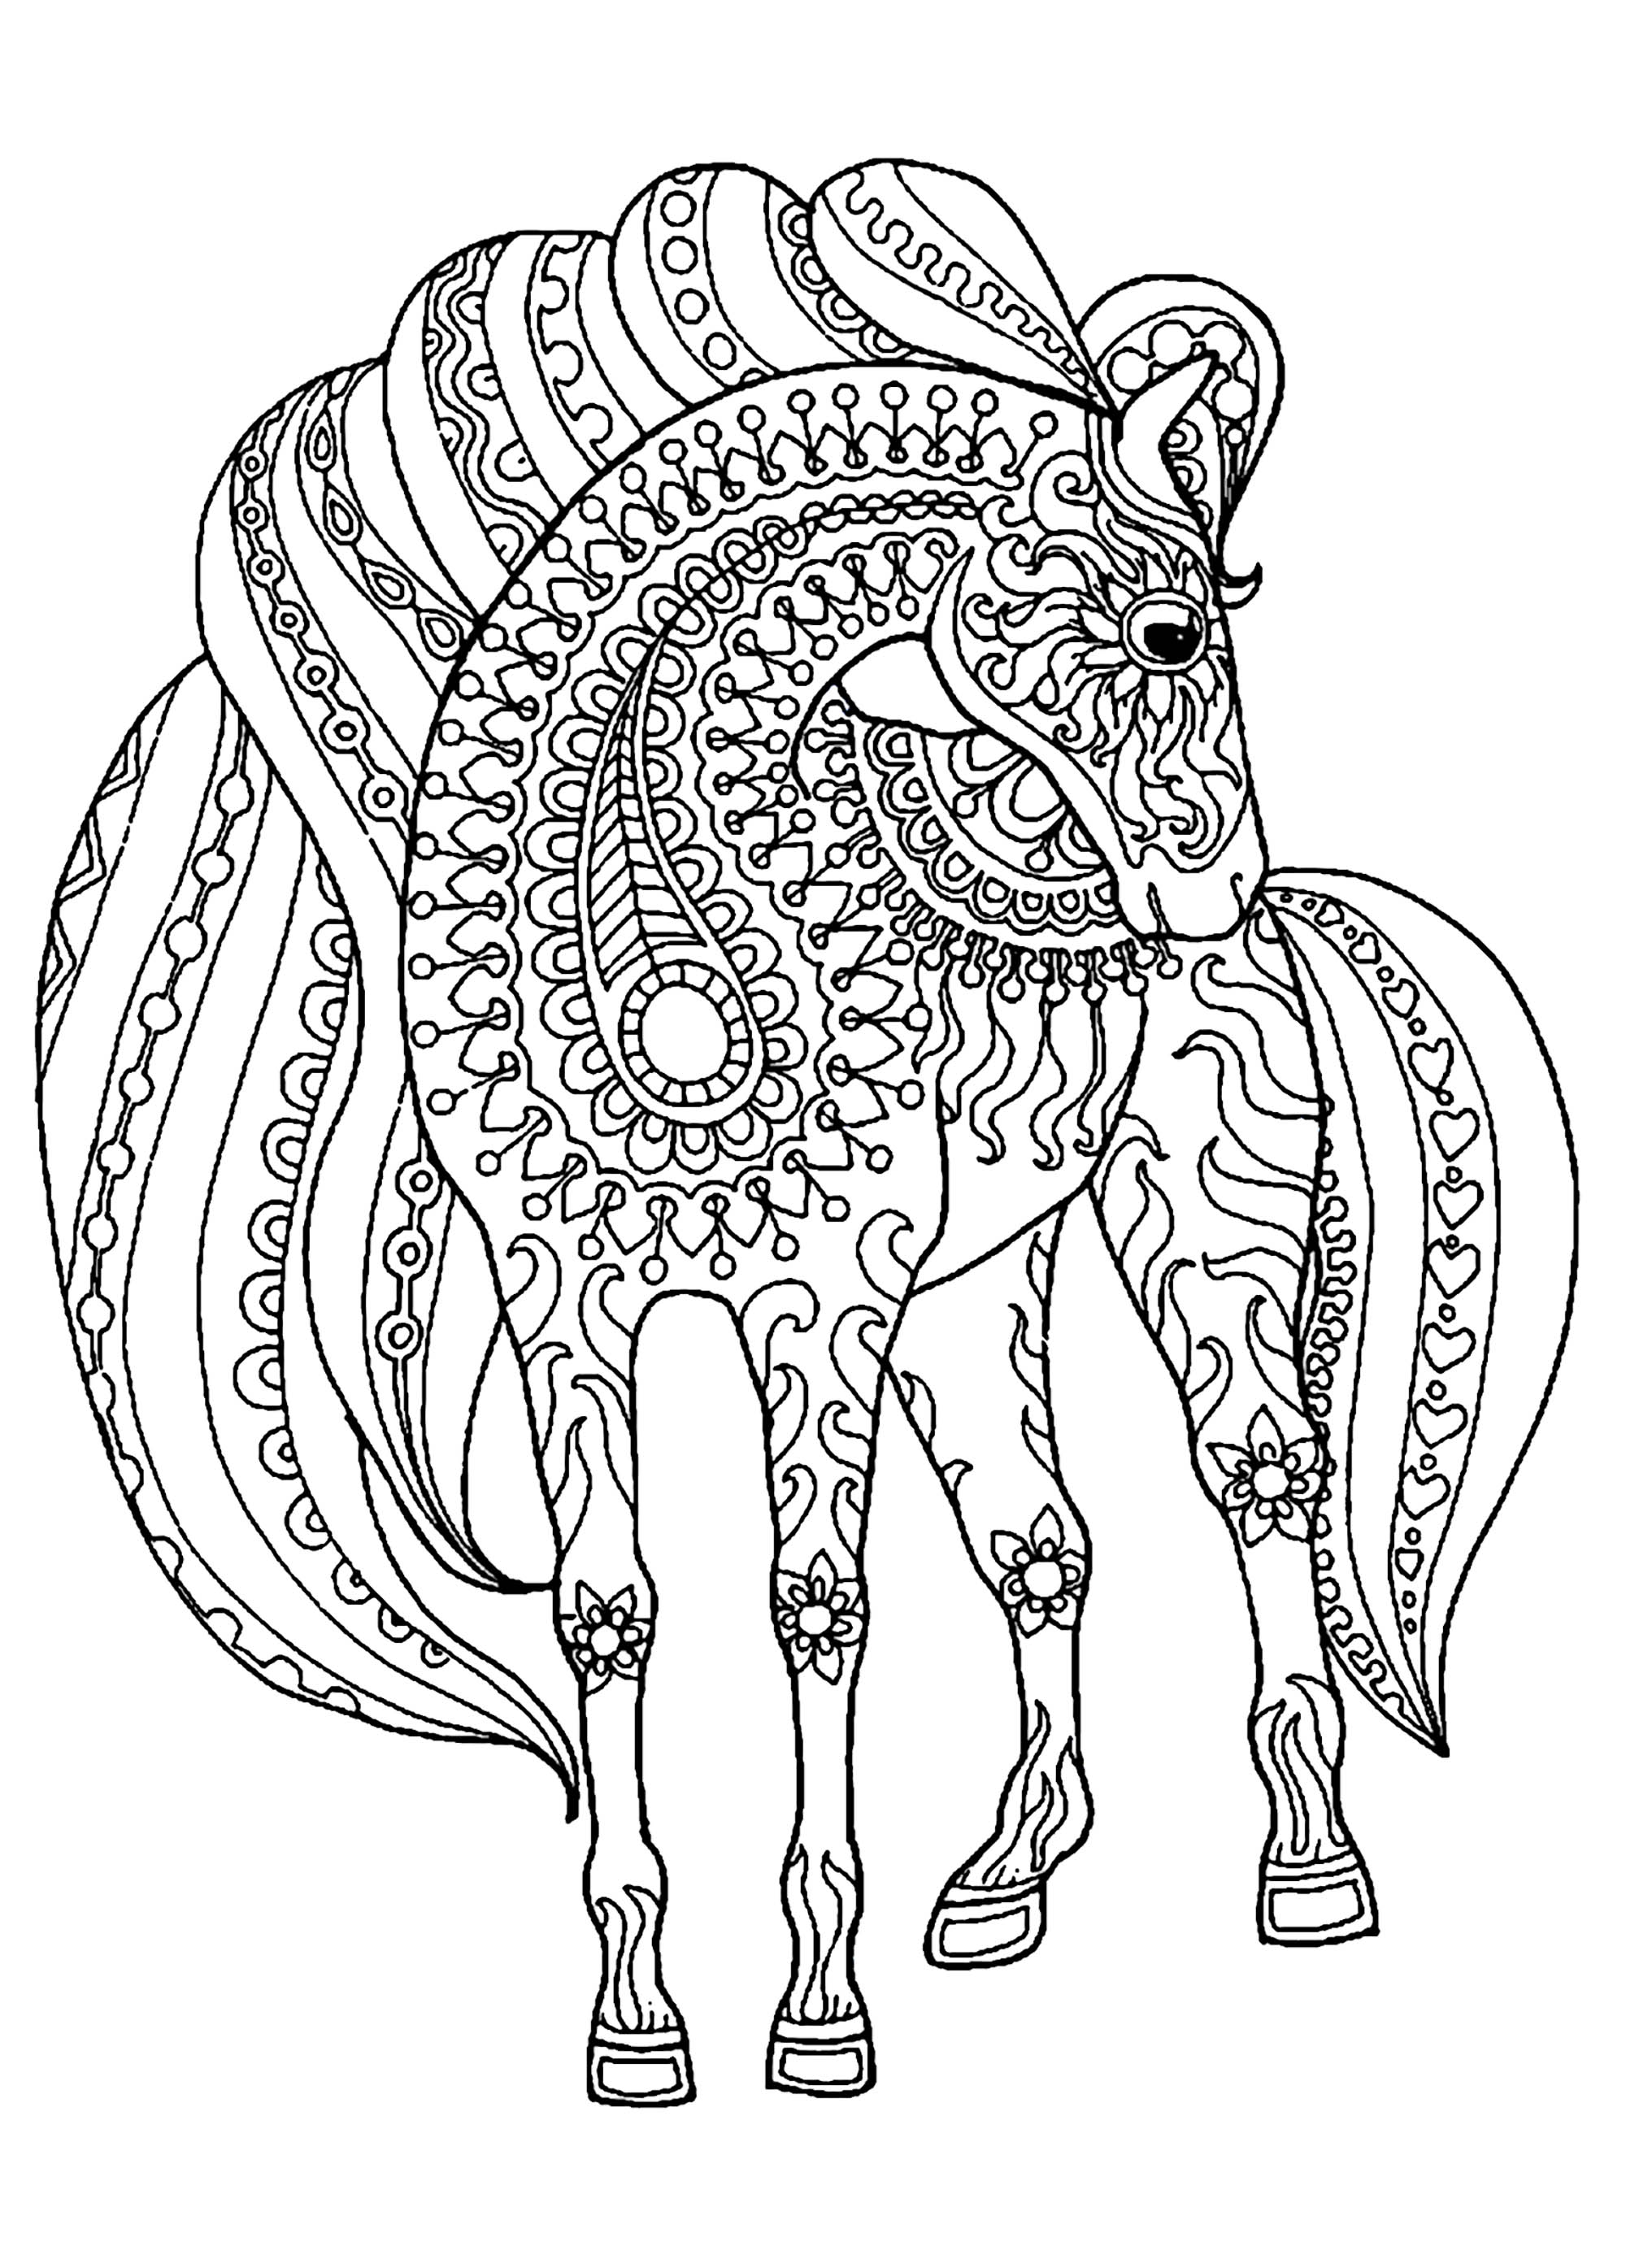 horse for coloring fun horse coloring pages for your kids printable for coloring horse